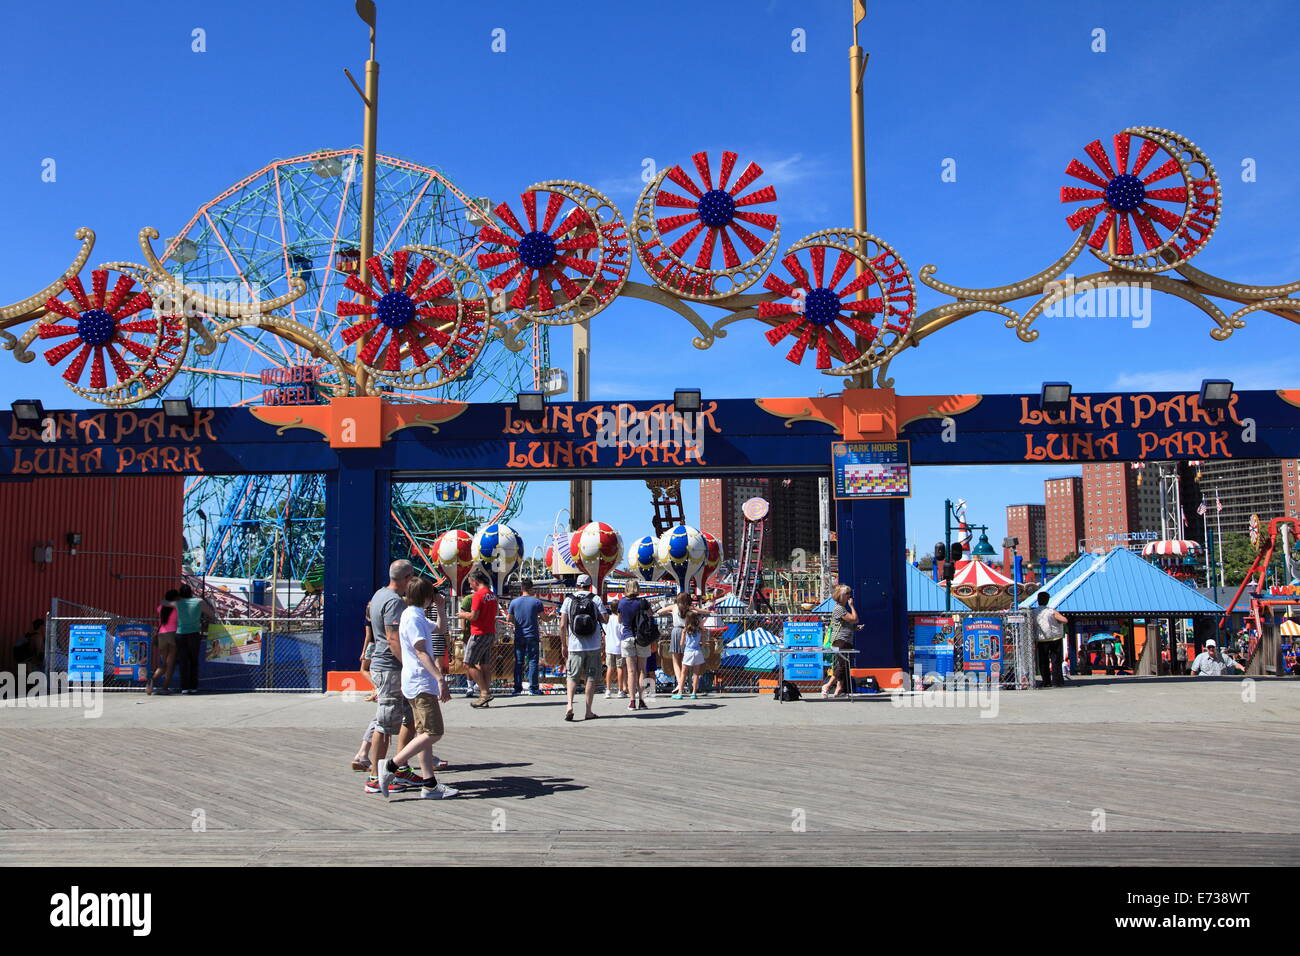 Coney Island Boardwalk Brooklyn New York